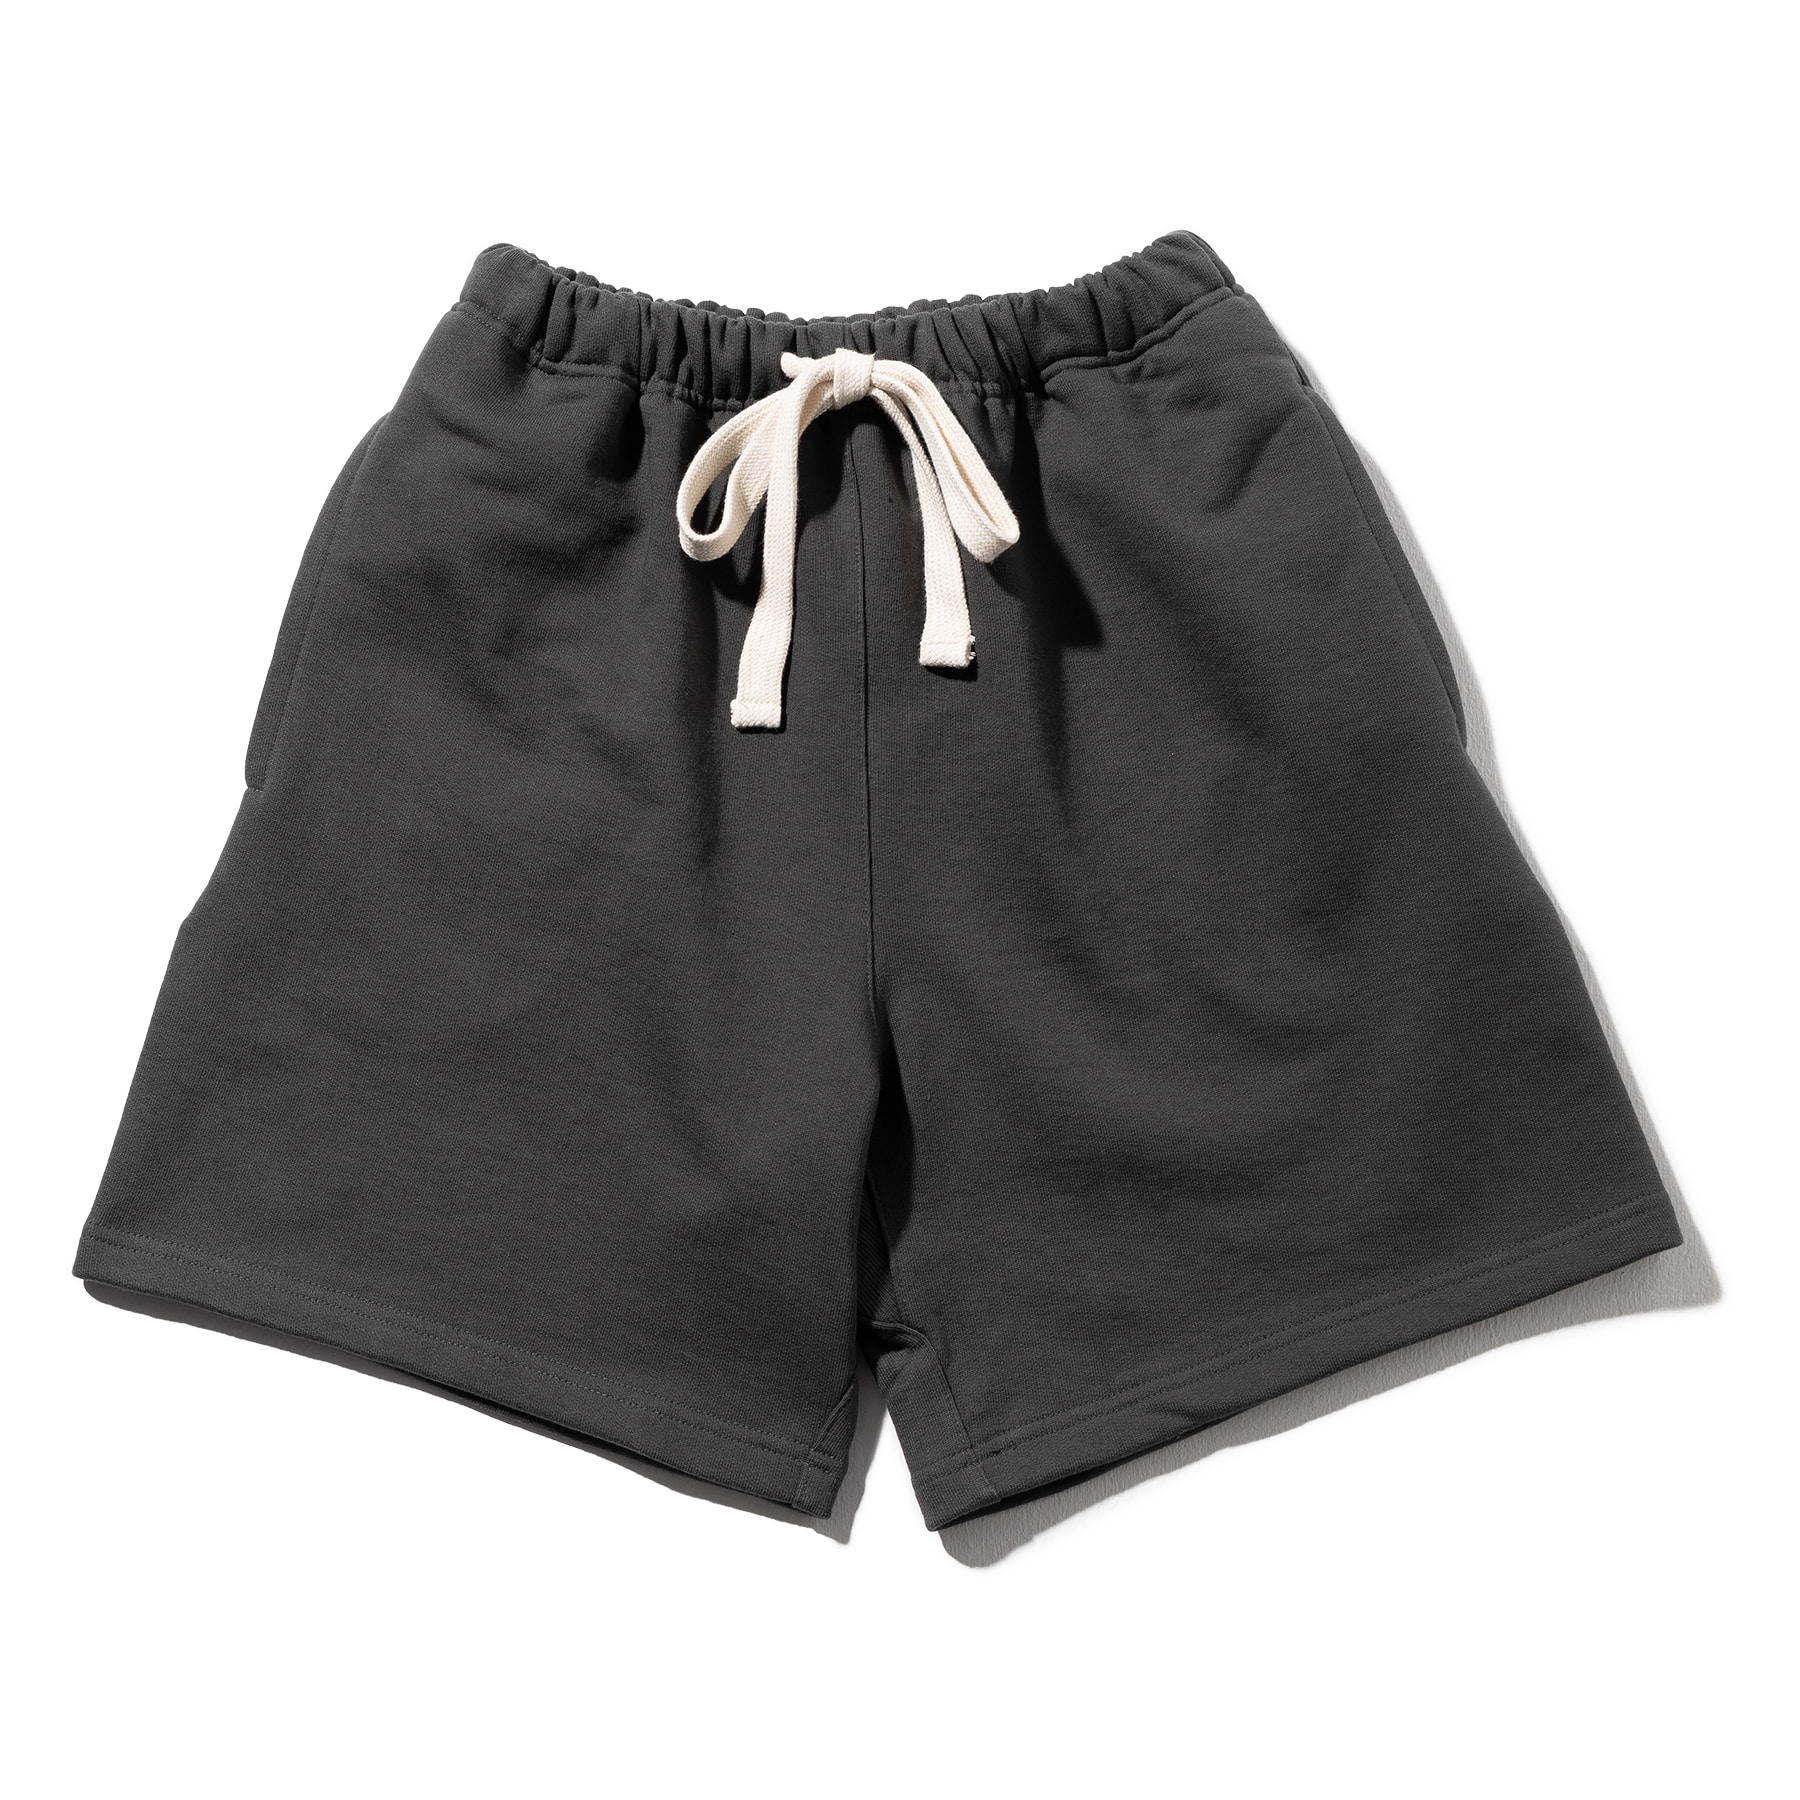 BASIC TRANING SHORT PANTS MSOSP003-DG